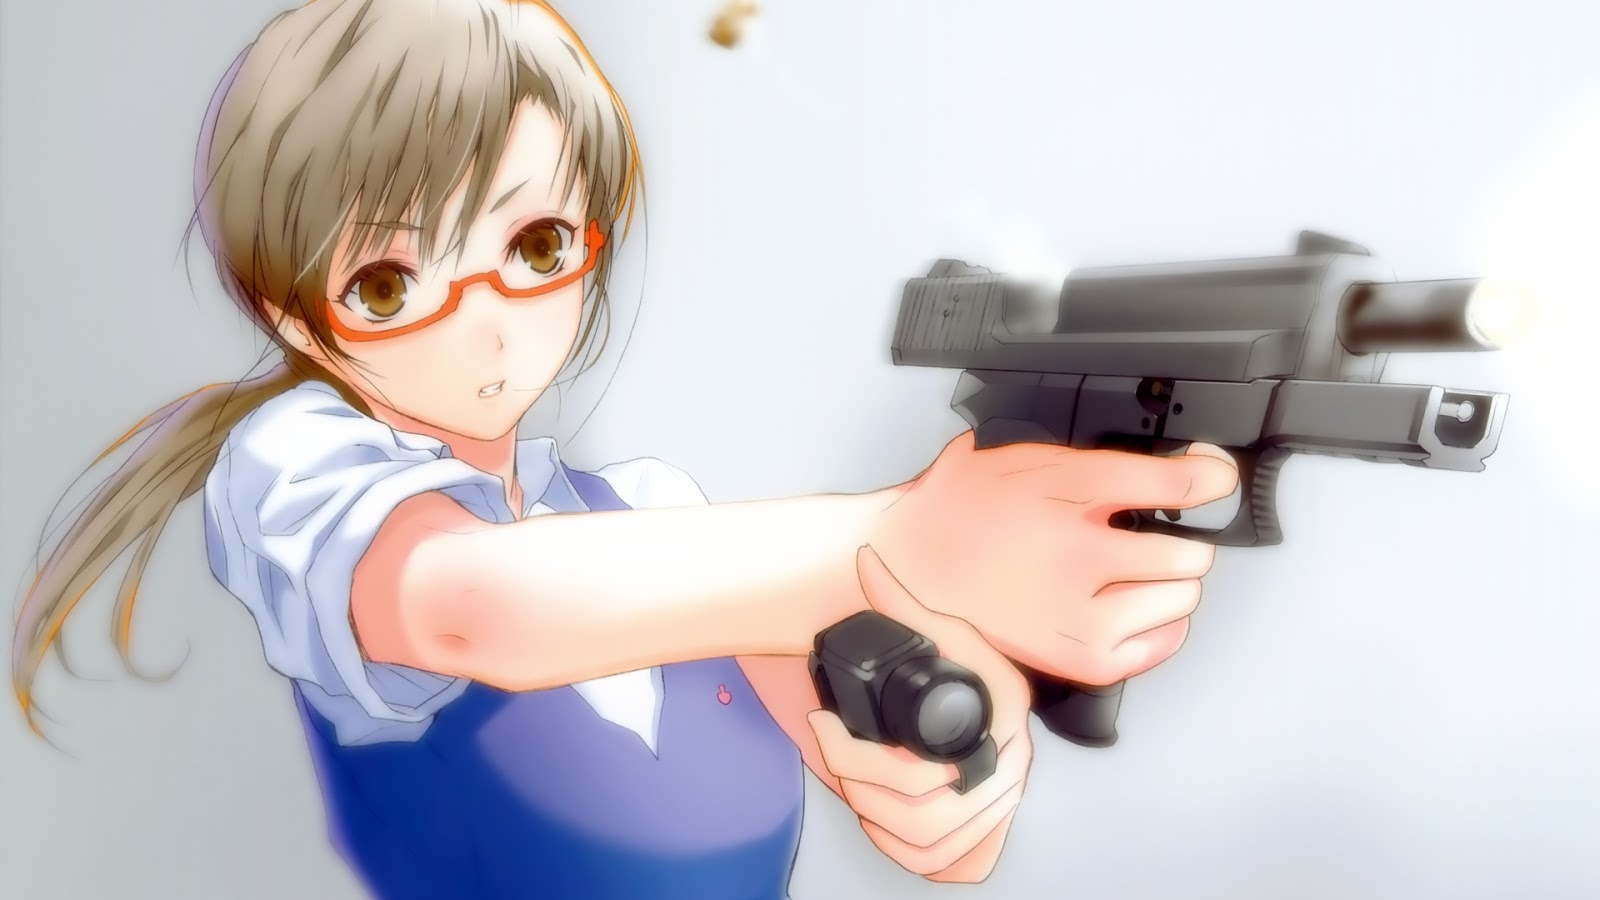 Anime Girl With Gun Wallpapers